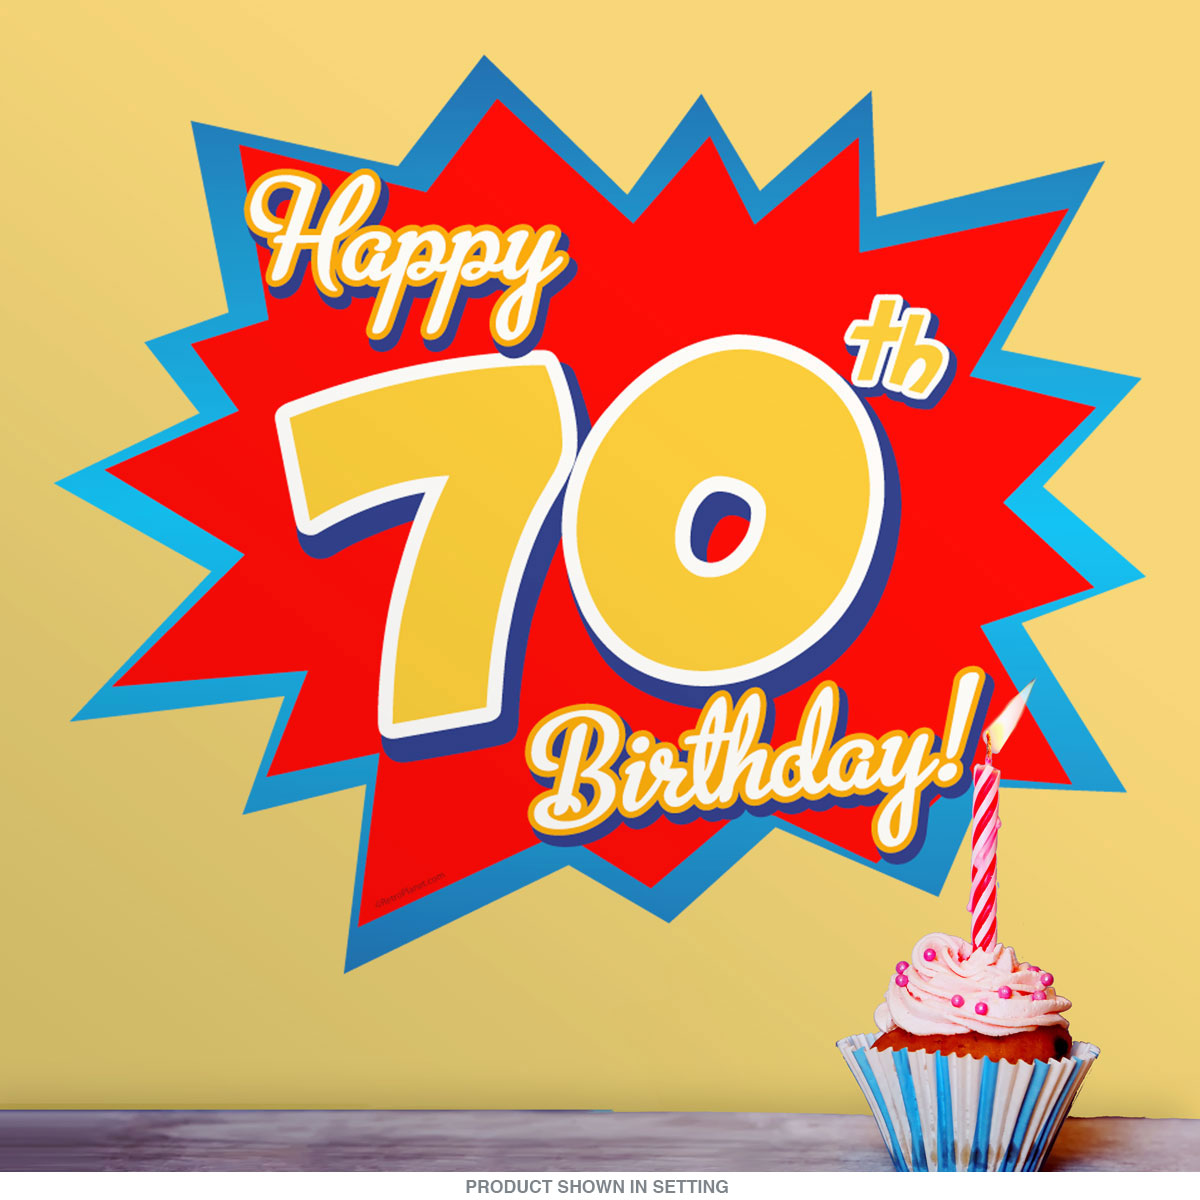 Happy 70th Birthday Party Wall Decal | Milestone Party Decorations ...